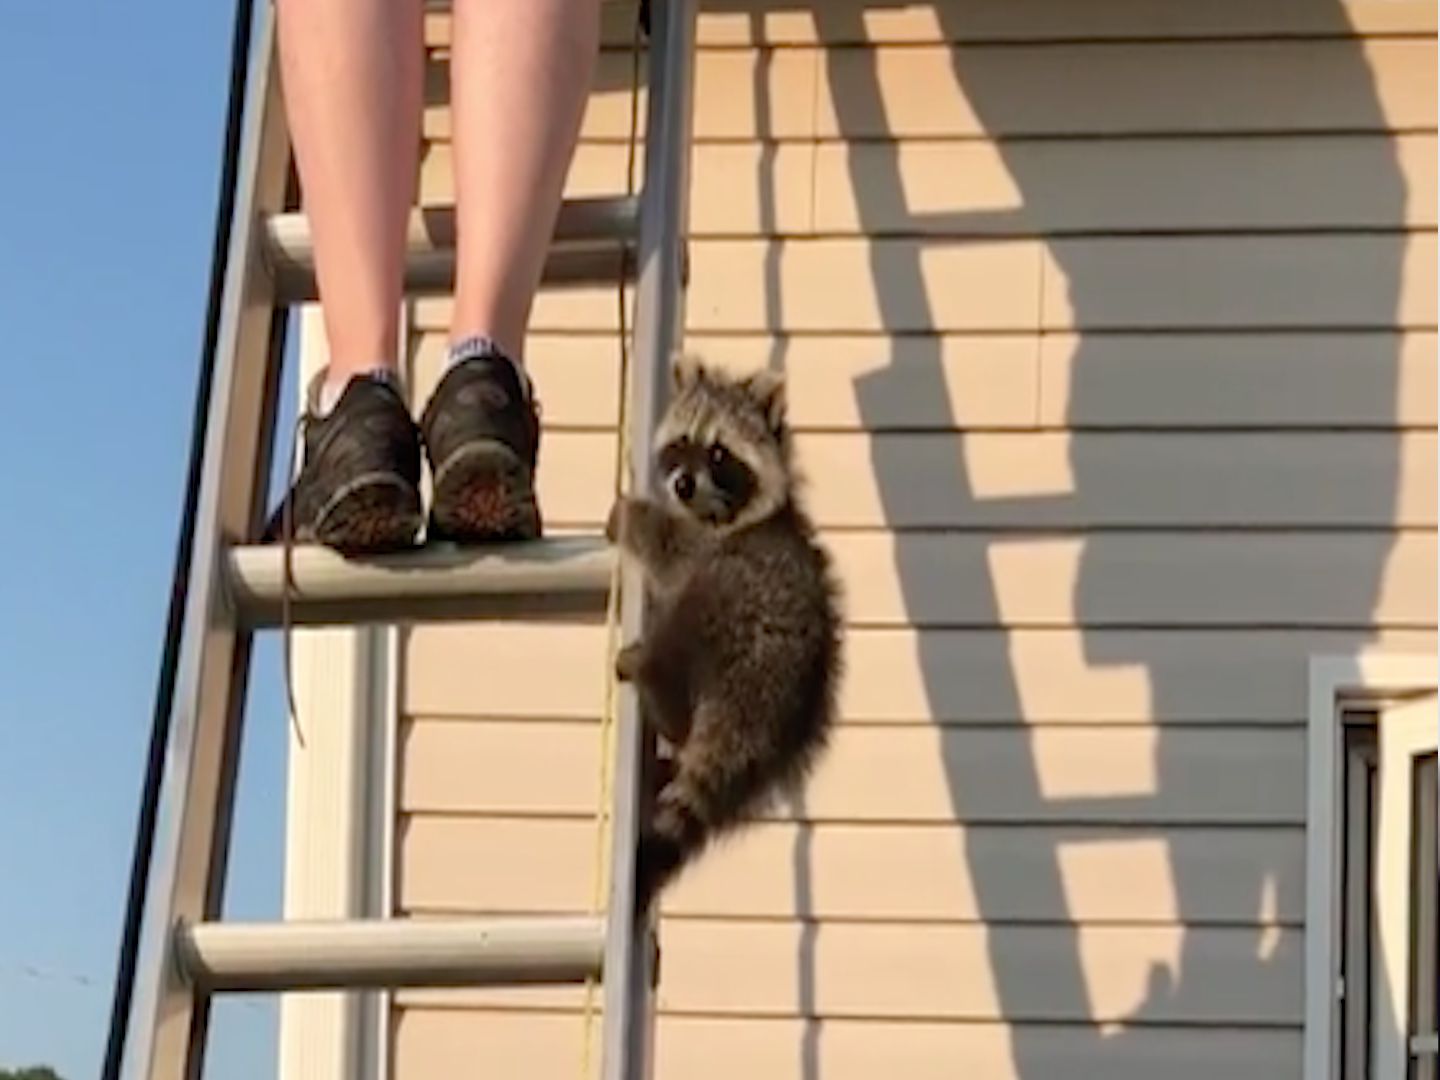 This little raccoon just wants to help out!